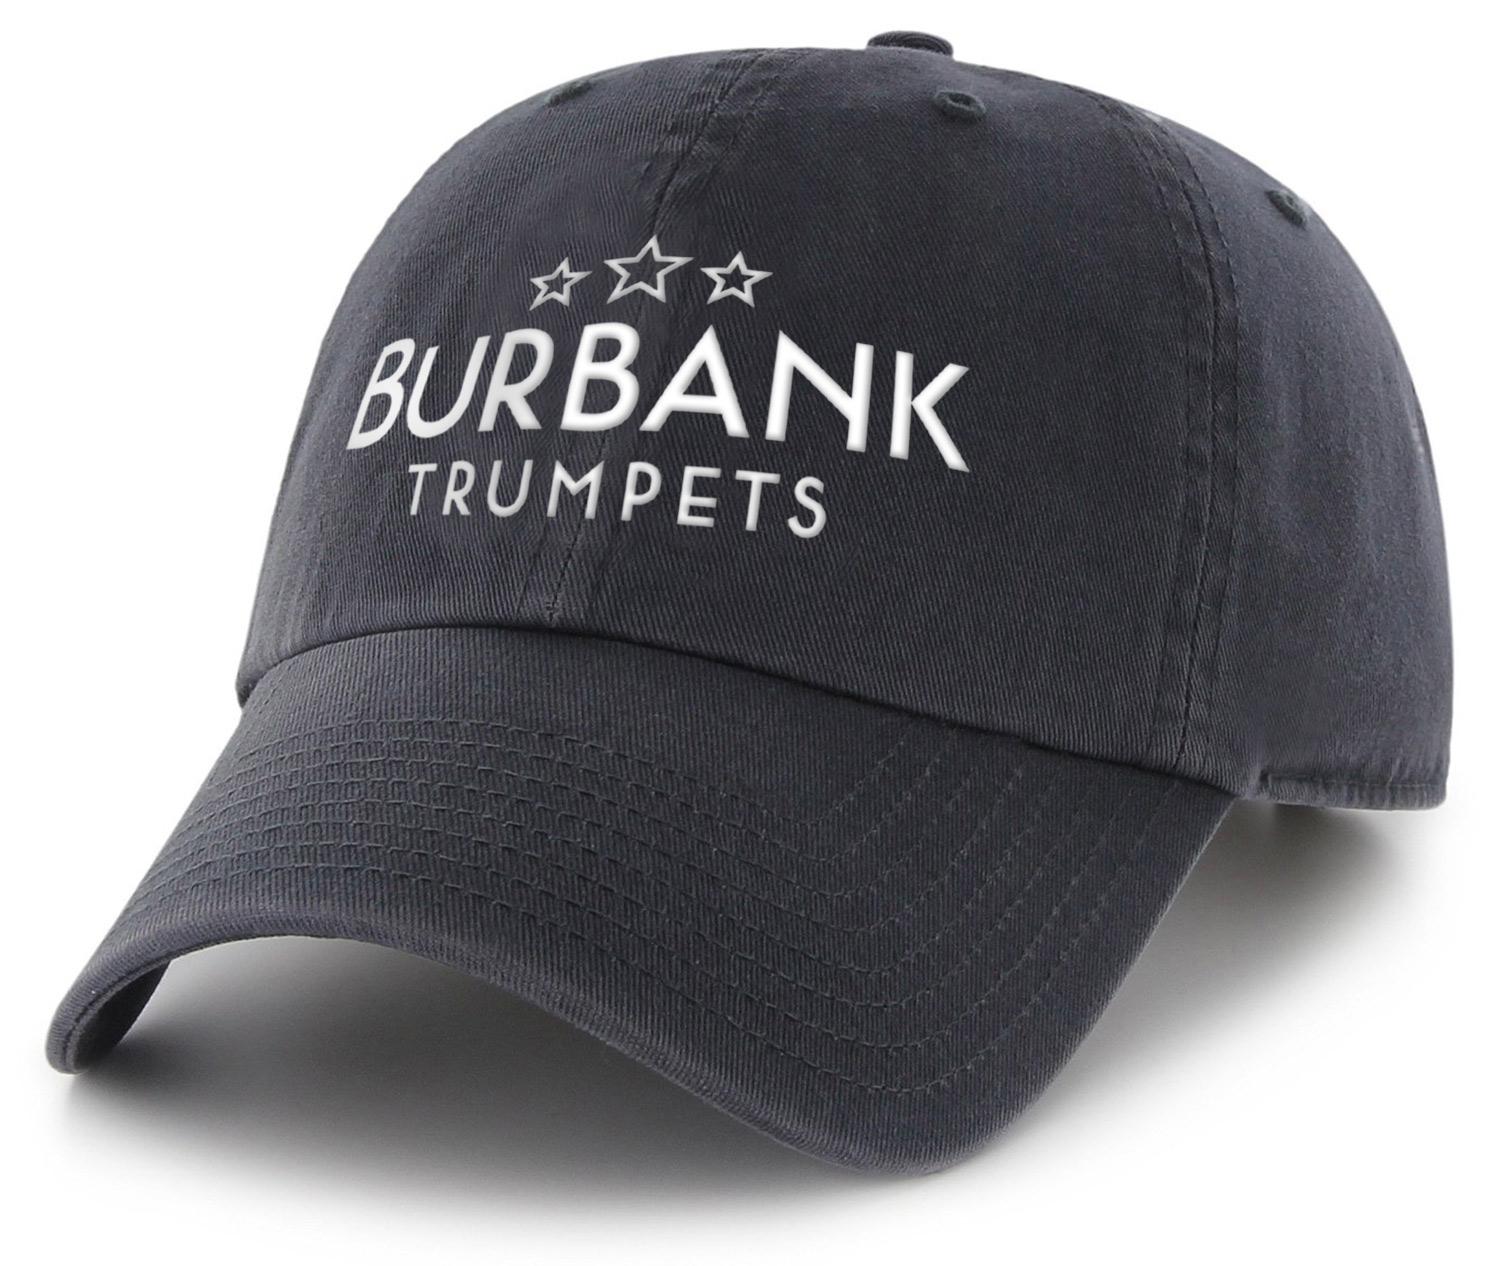 Burbank Trumpets Baseball Cap - Adjustable, one size fits most  $22.00